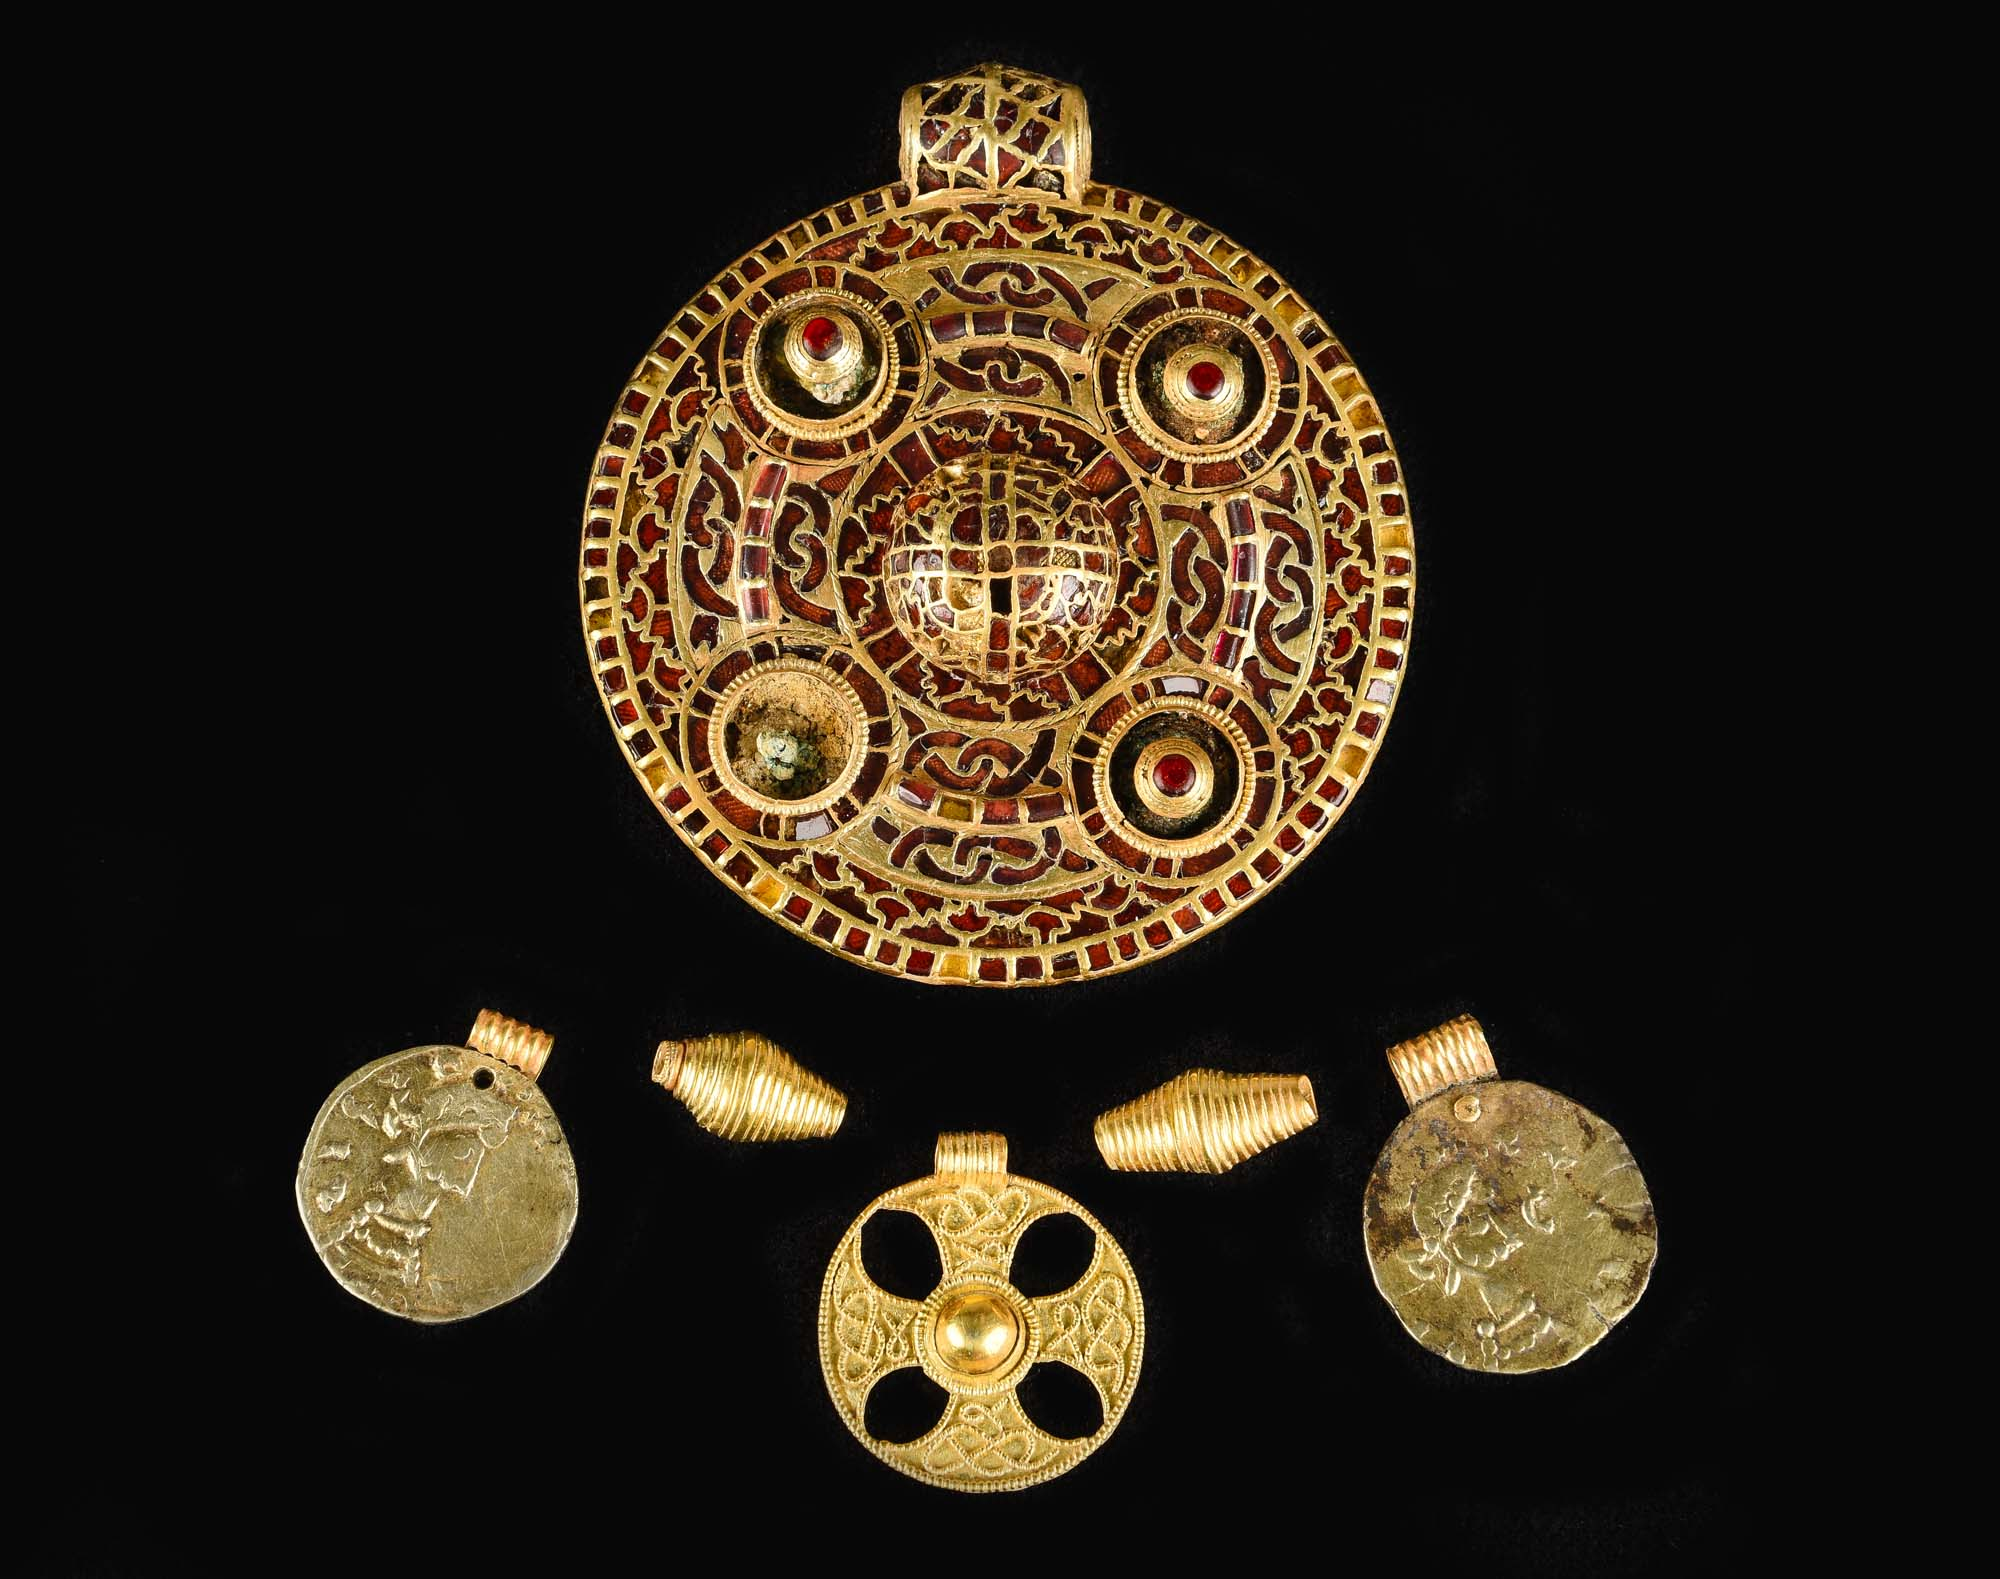 a photo of a large round gold pendant encrsuted with stones together with three smaller gold pedants and two conical gold spacers